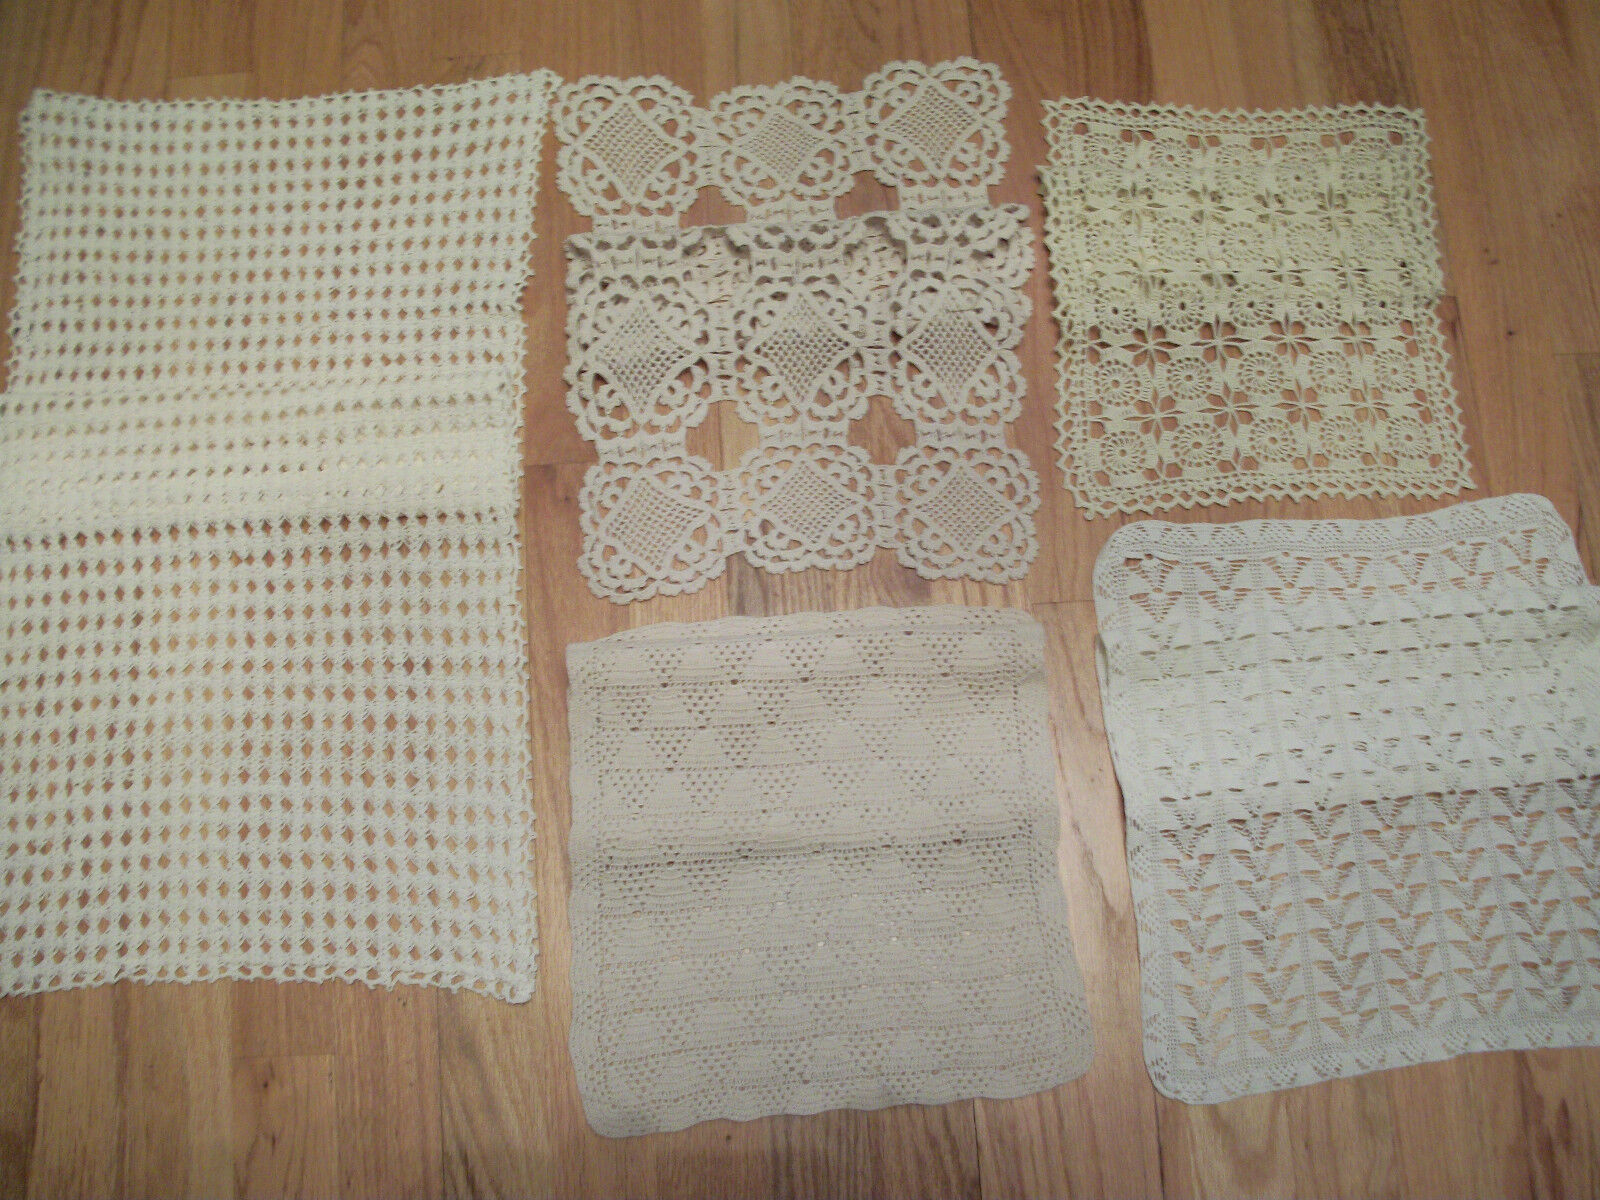 Vintage 5 Pièce Lot hand crochet nappe Table Runner DOILIES LQQK